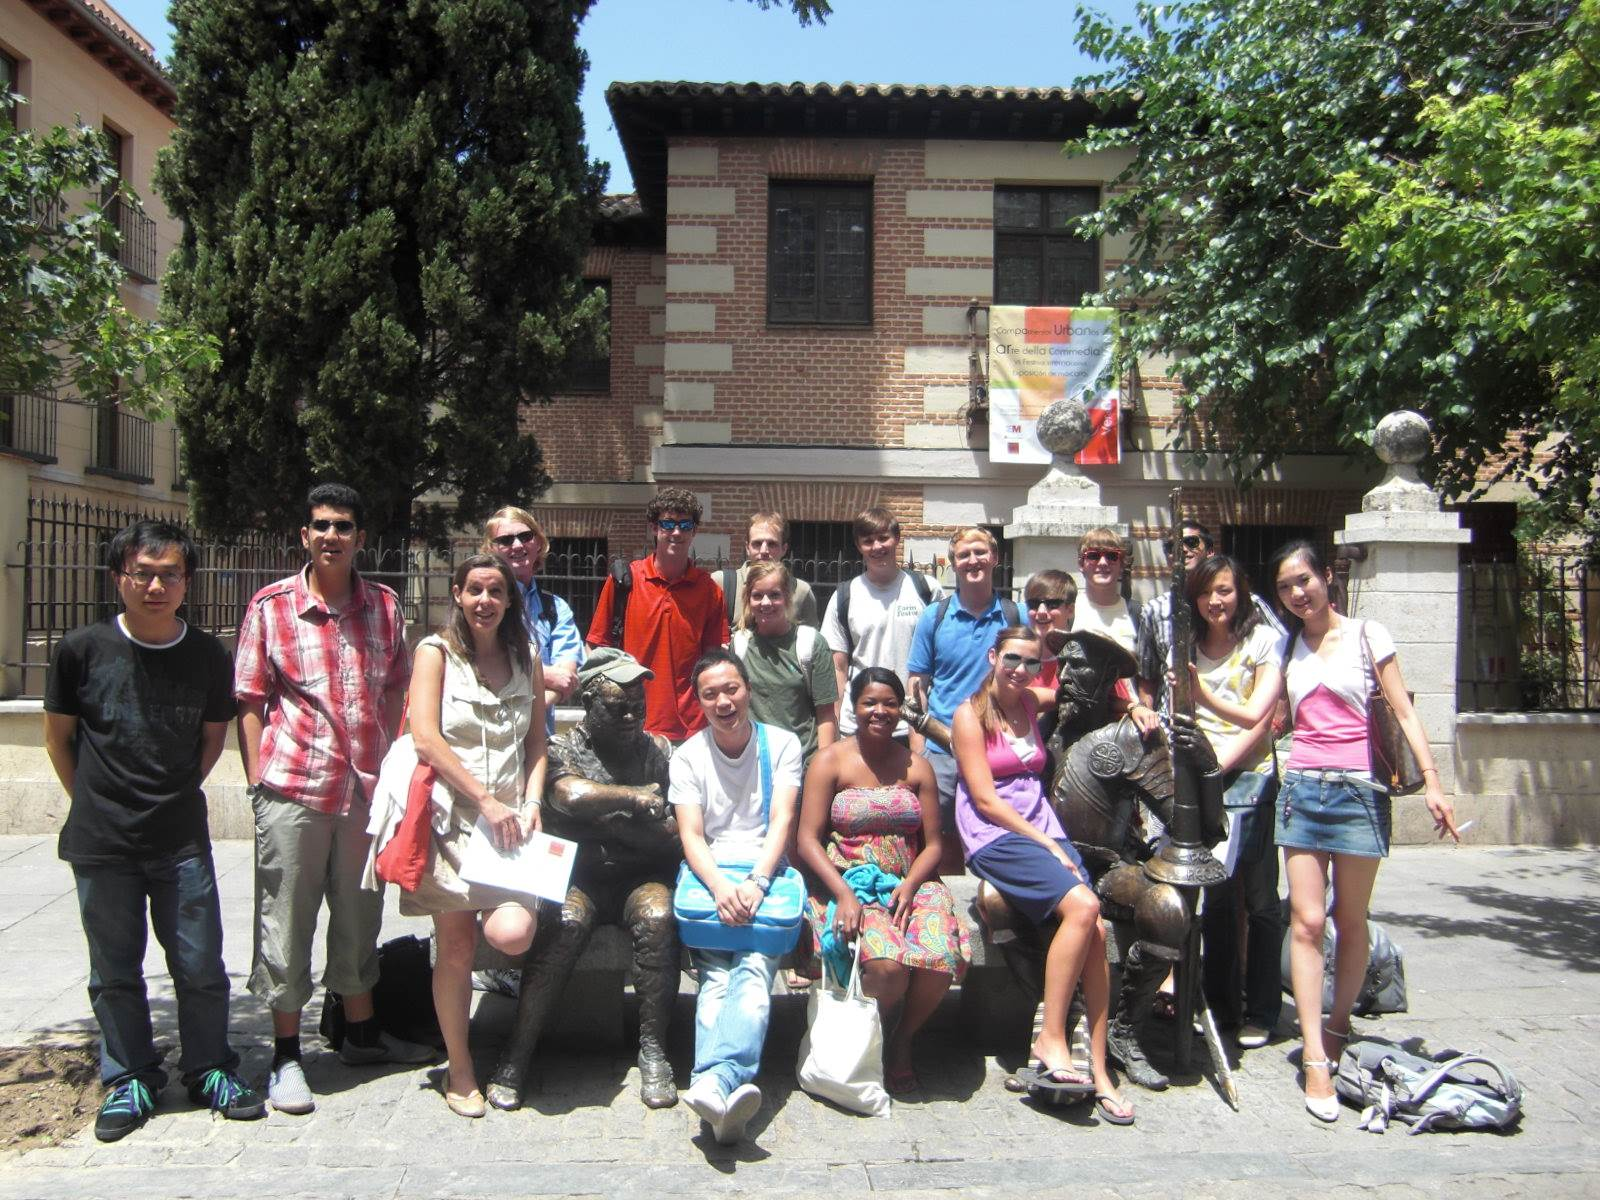 Visit to the birthplace of Cervantes